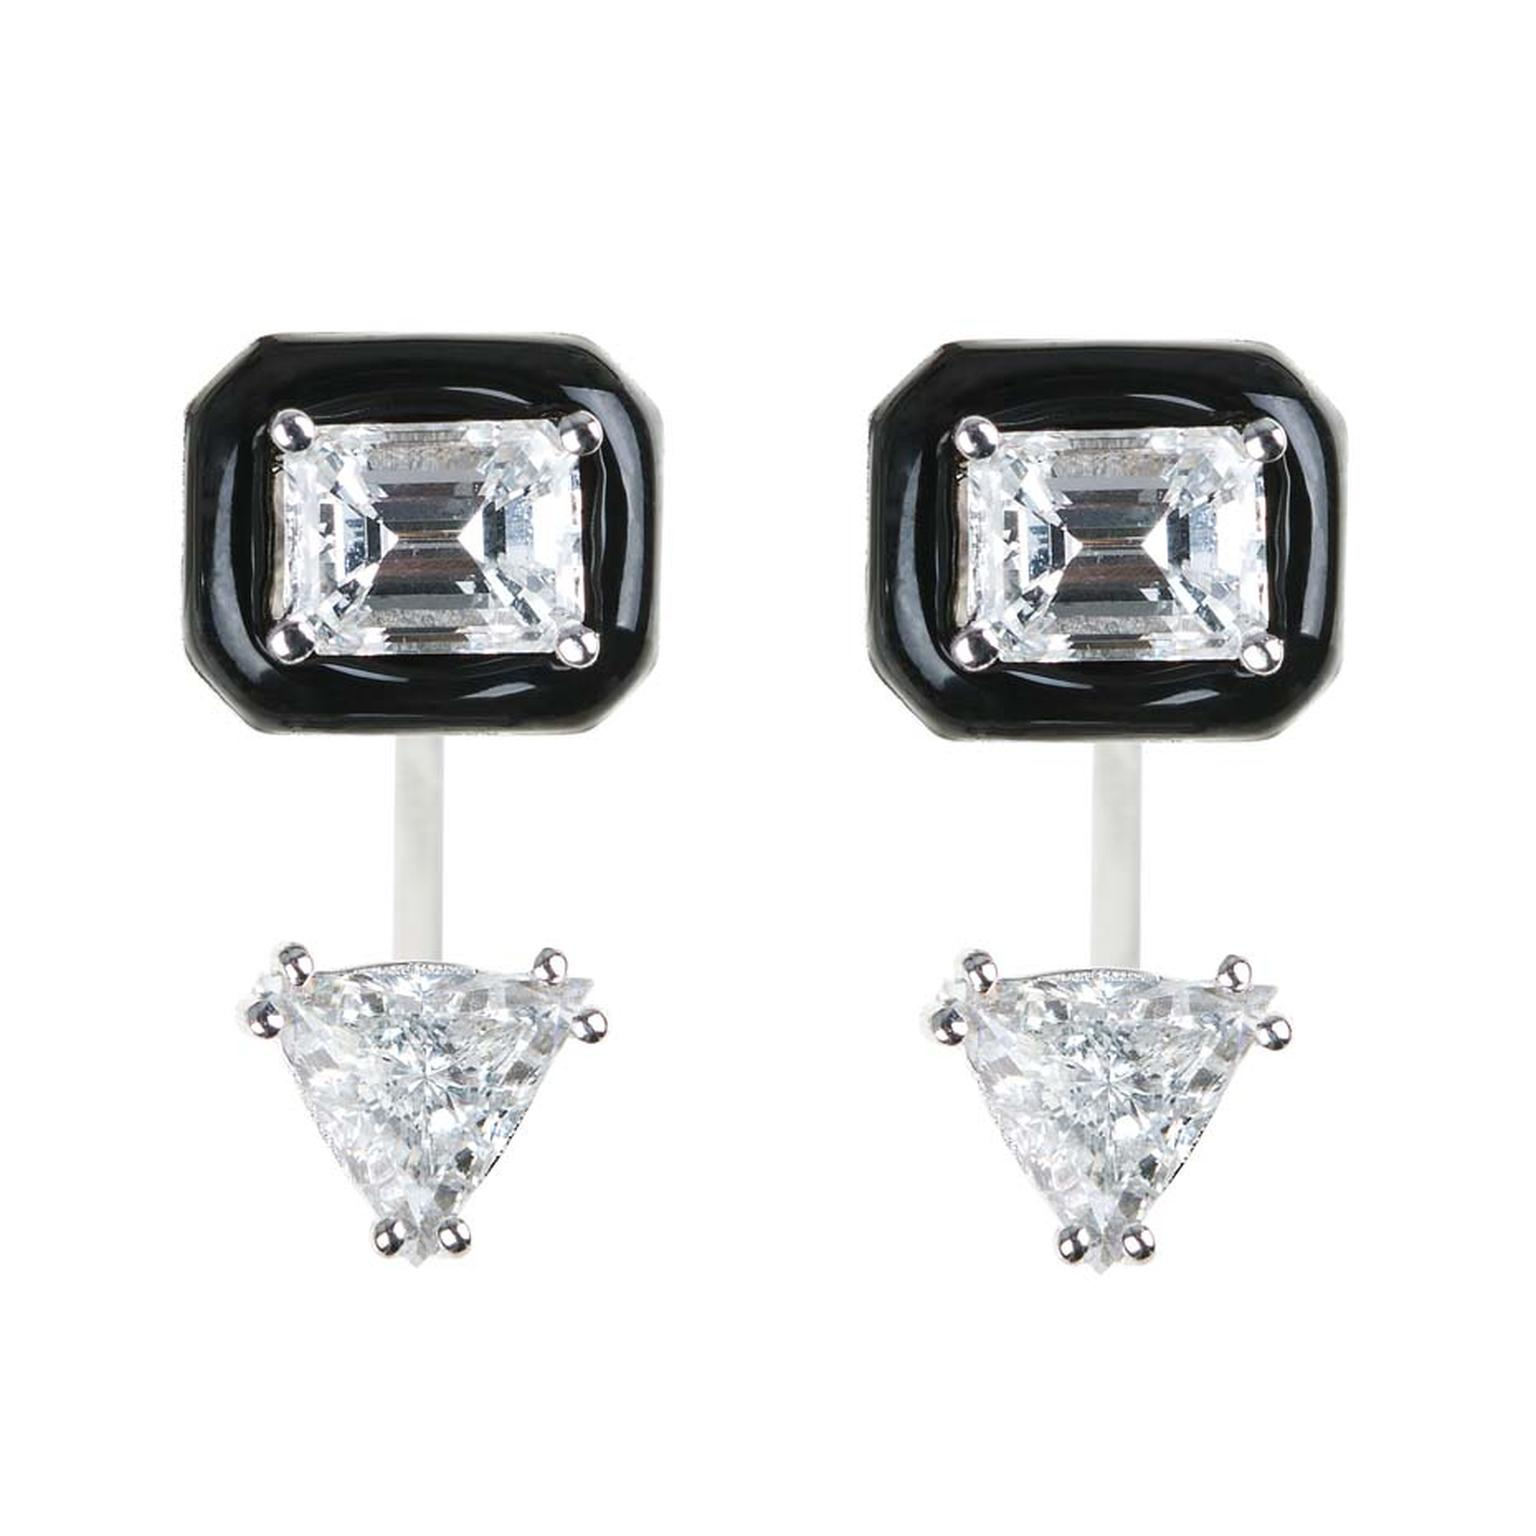 Nikos Koulis earrings featuring an emerald-cut diamond surrounded by black enamel with triangle-cut drop diamonds.